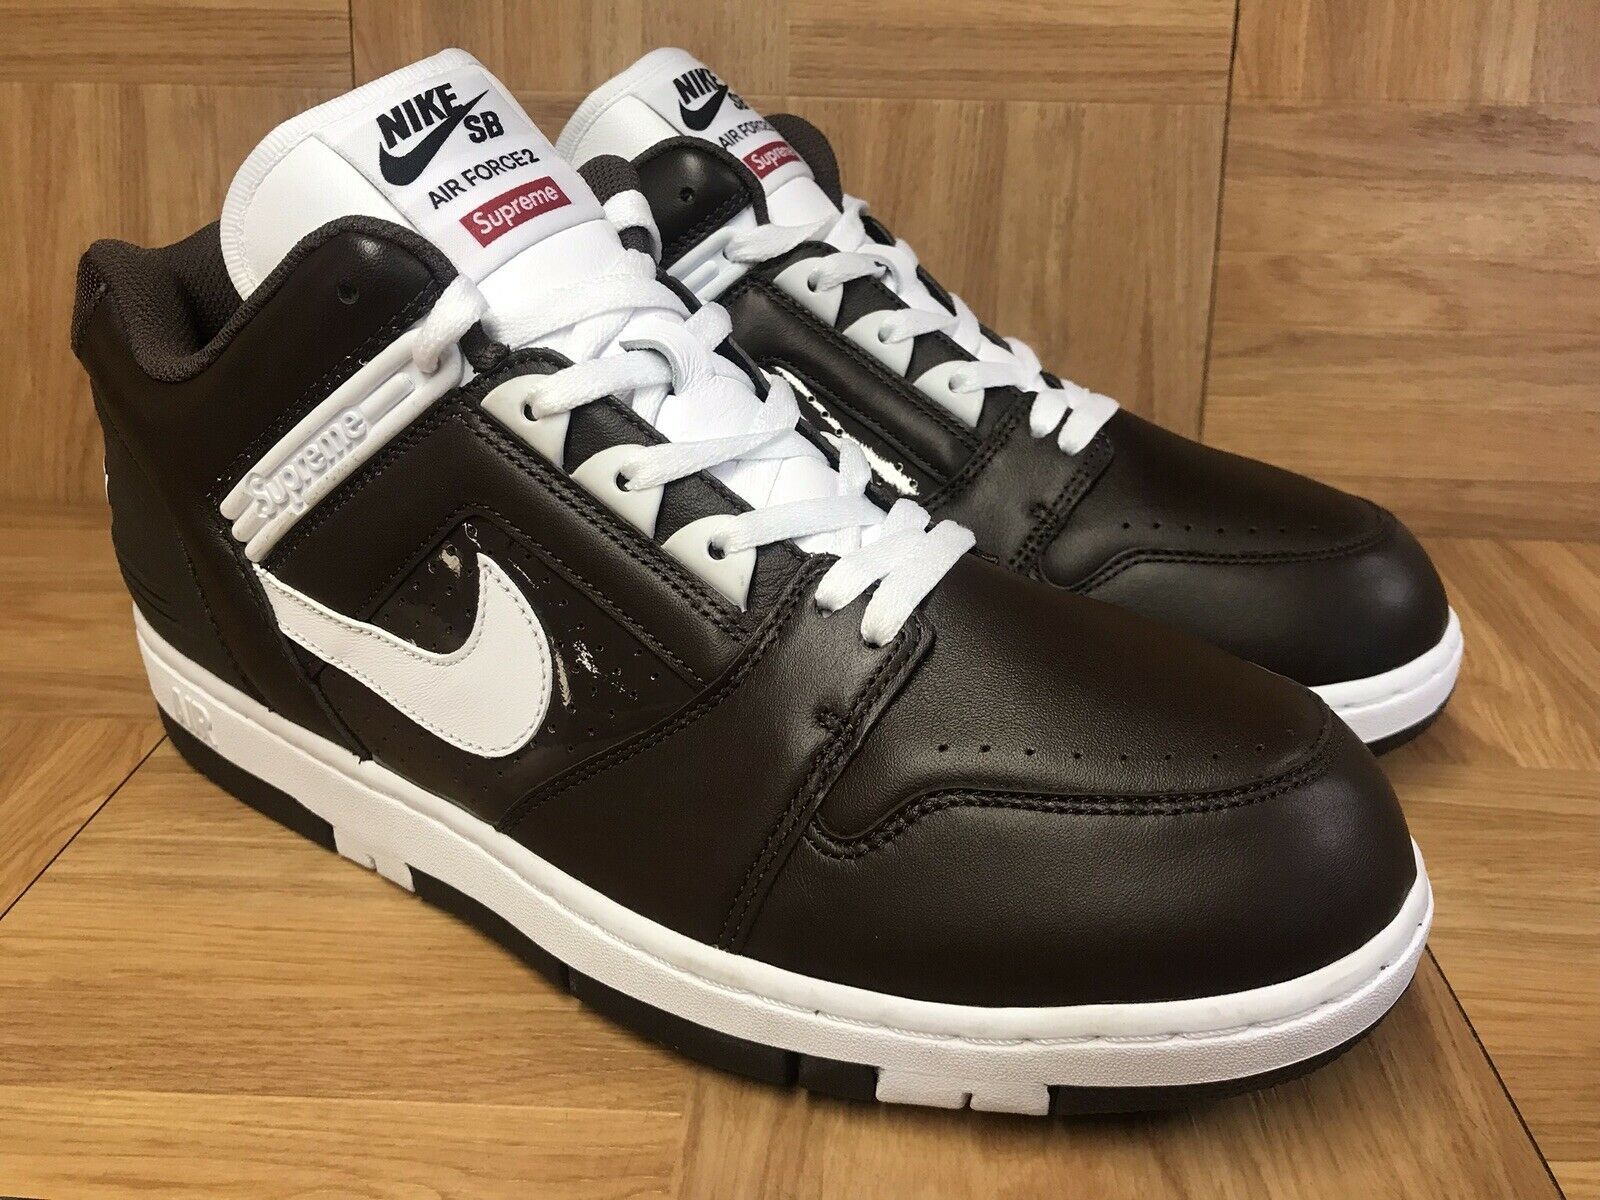 premium selection 8324a 88110 RARE Nike SB SB SB Air Force 2 Low SUPREME World Famous Baroque Brown 13  AA0871